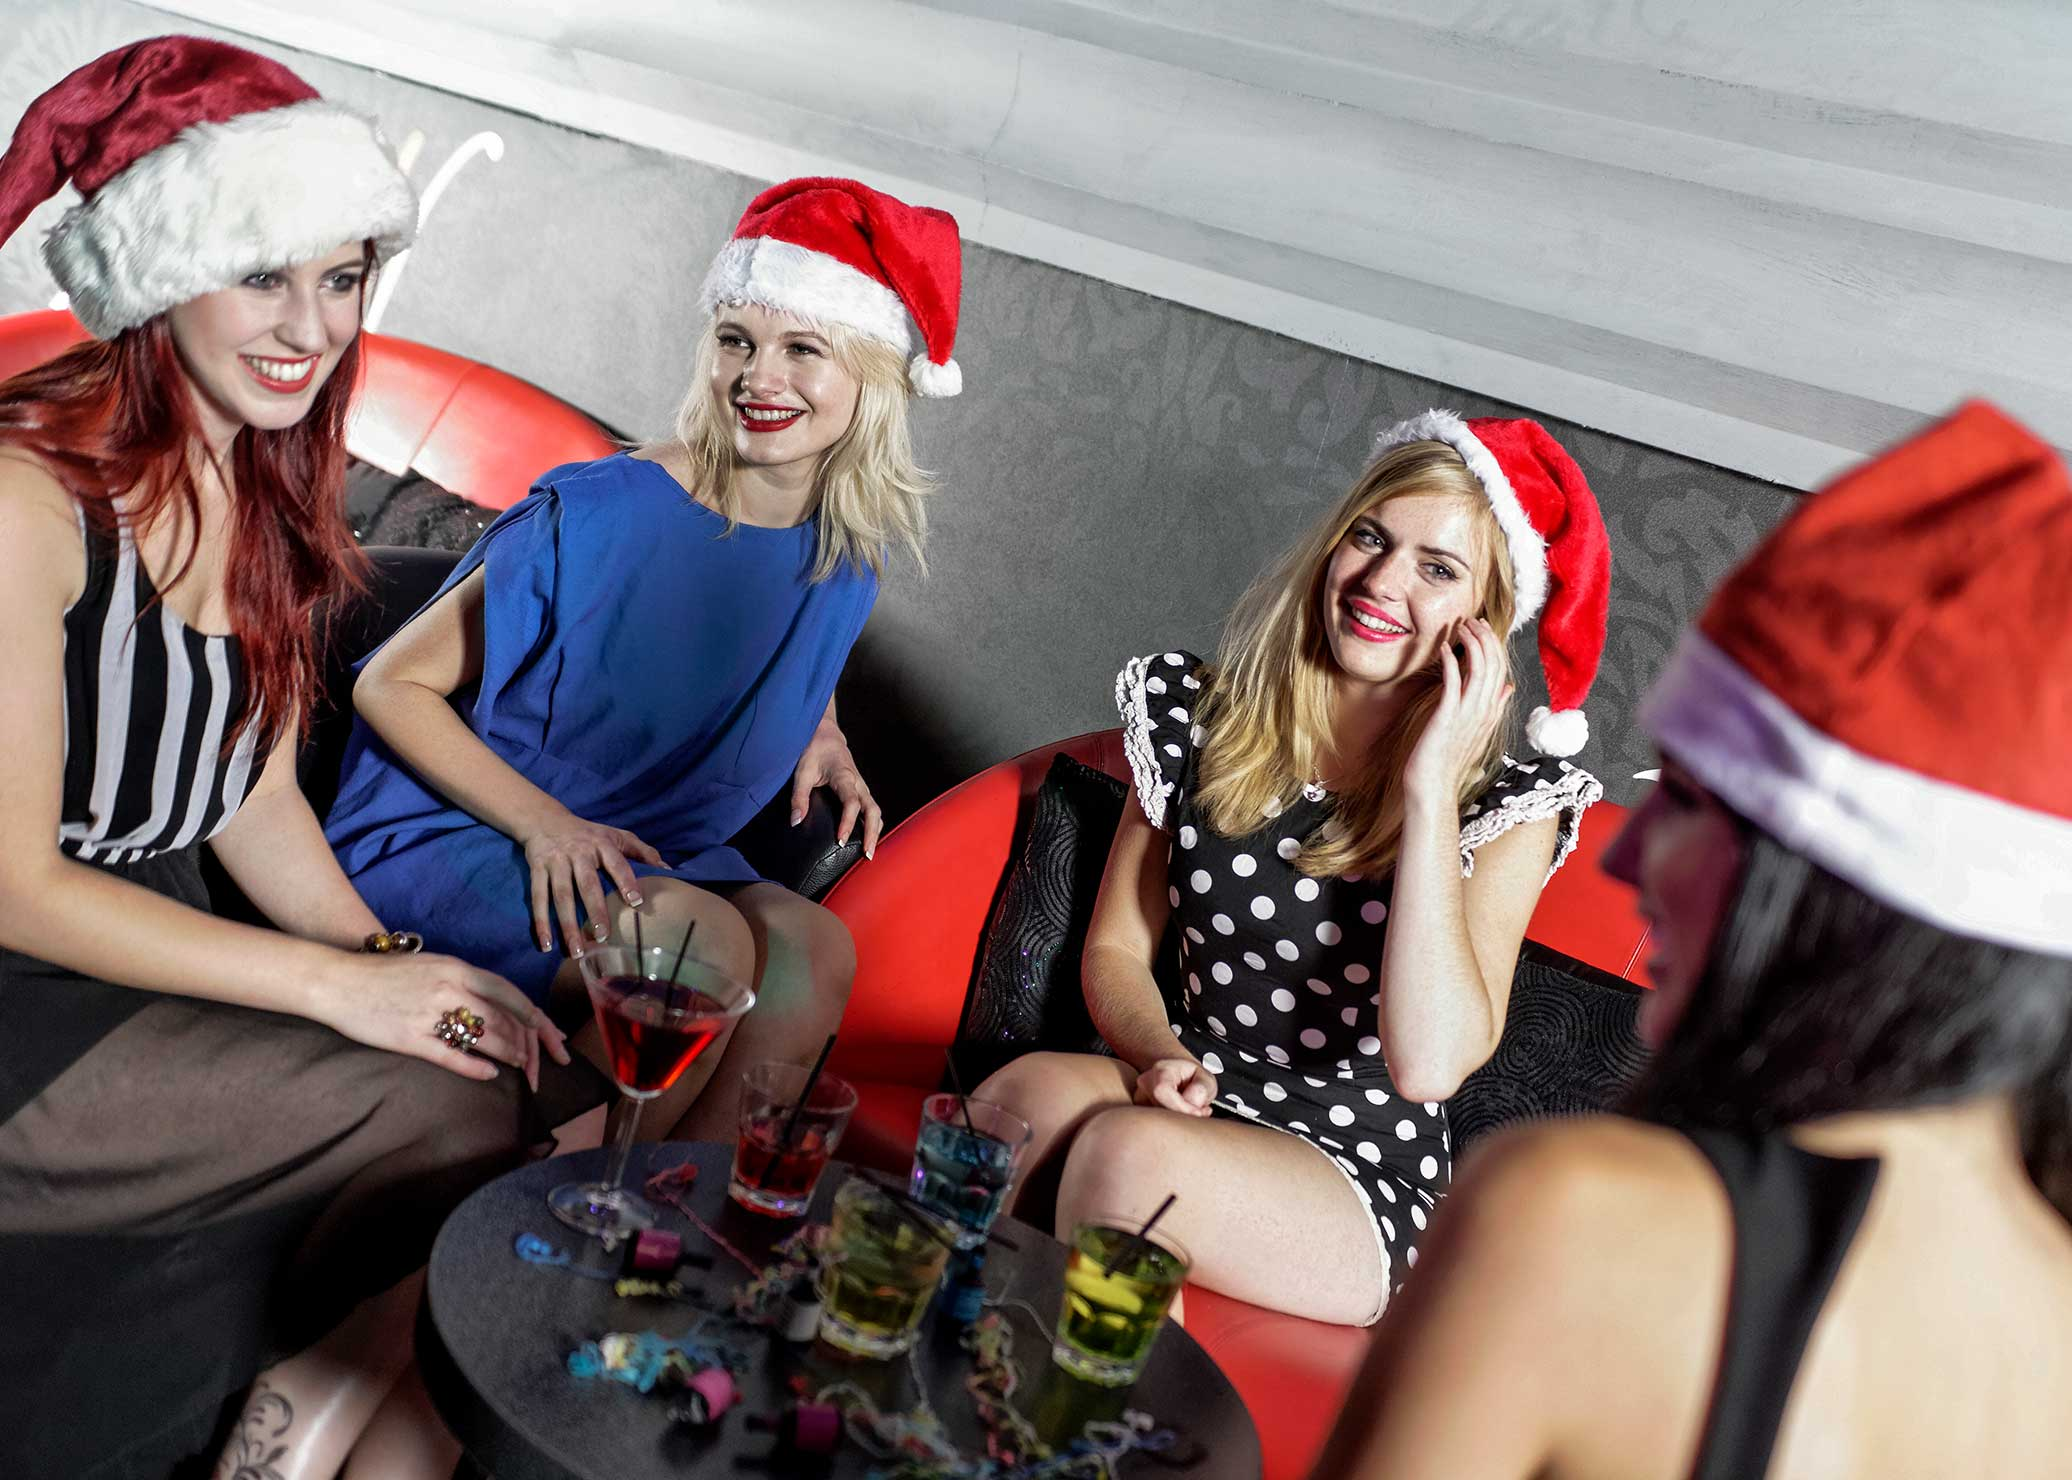 5 Christmas party ideas the office will never see coming | Robert Half